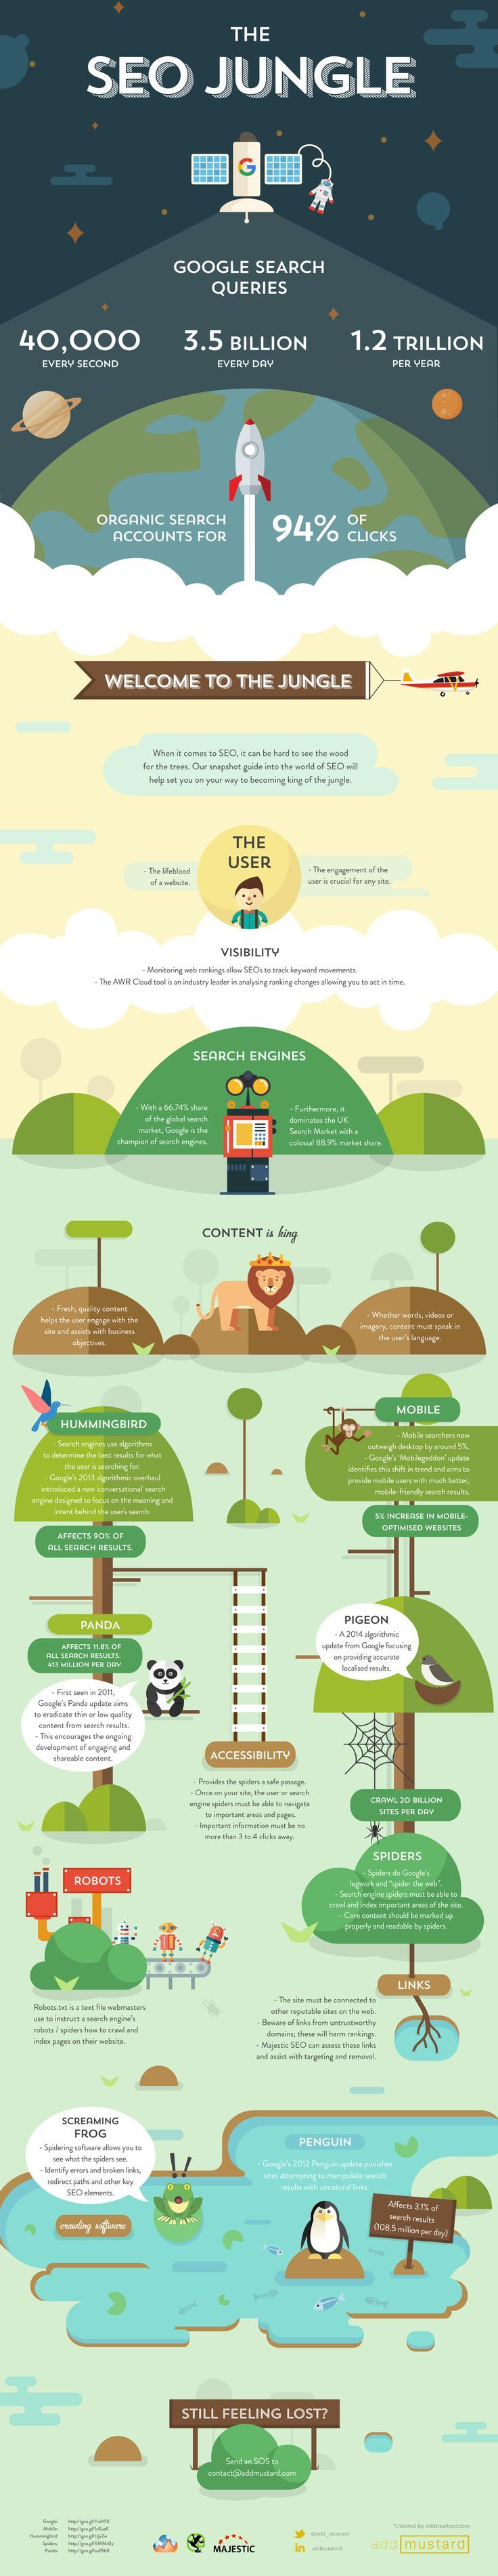 When it comes to search engine optimization, it can be hard to see the wood for the trees. The following guide to the world of SEO will help you set you on your way to becoming king of the jungle.